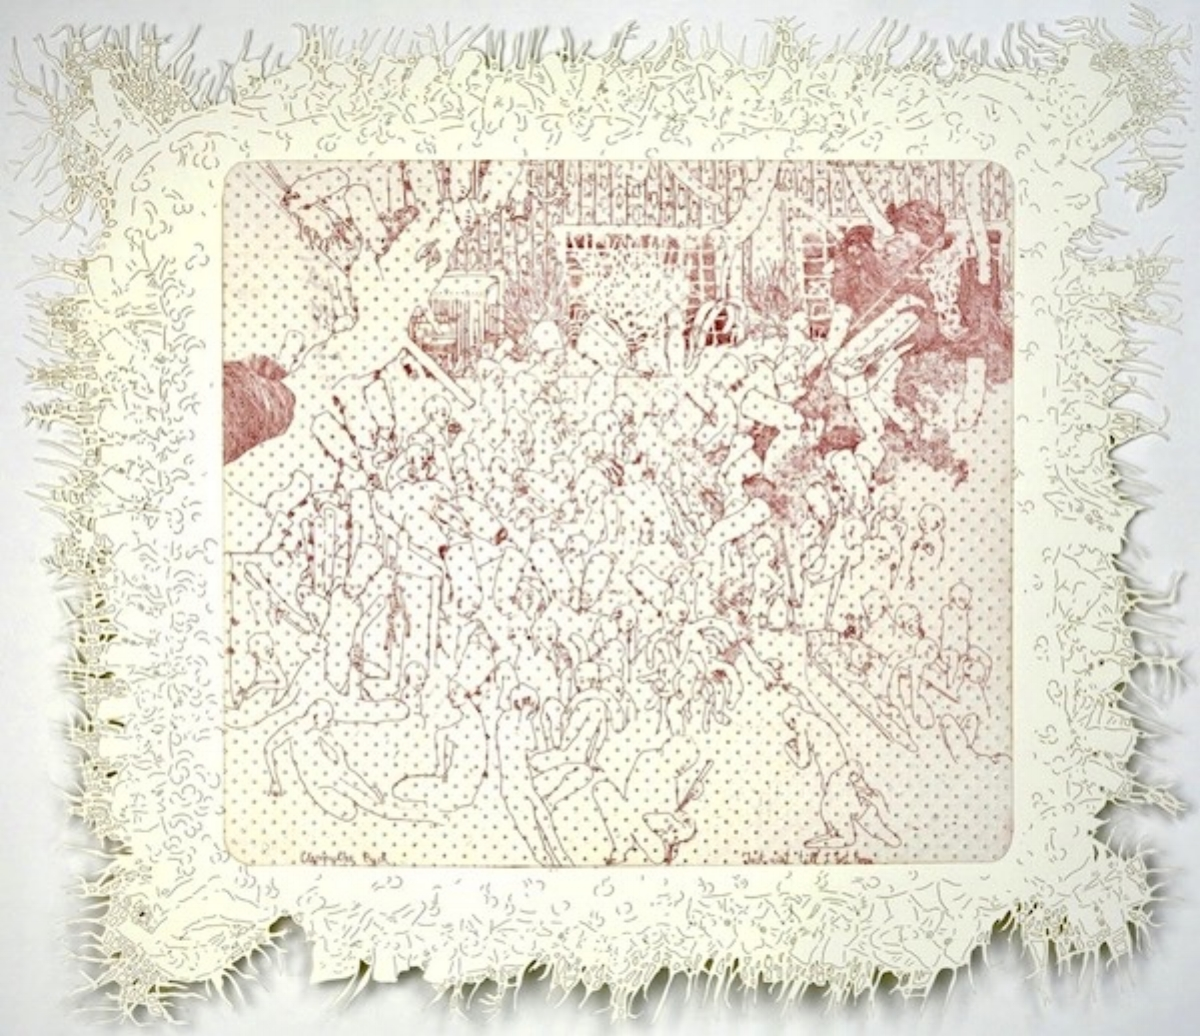 """Dasha Shiskin, I WANNA BE WELL I (I THINK WE COULD DO WITH OUT GIRLS), 2007-2008, intaglio and engraving, 22"""" x 26"""" ed: 15"""